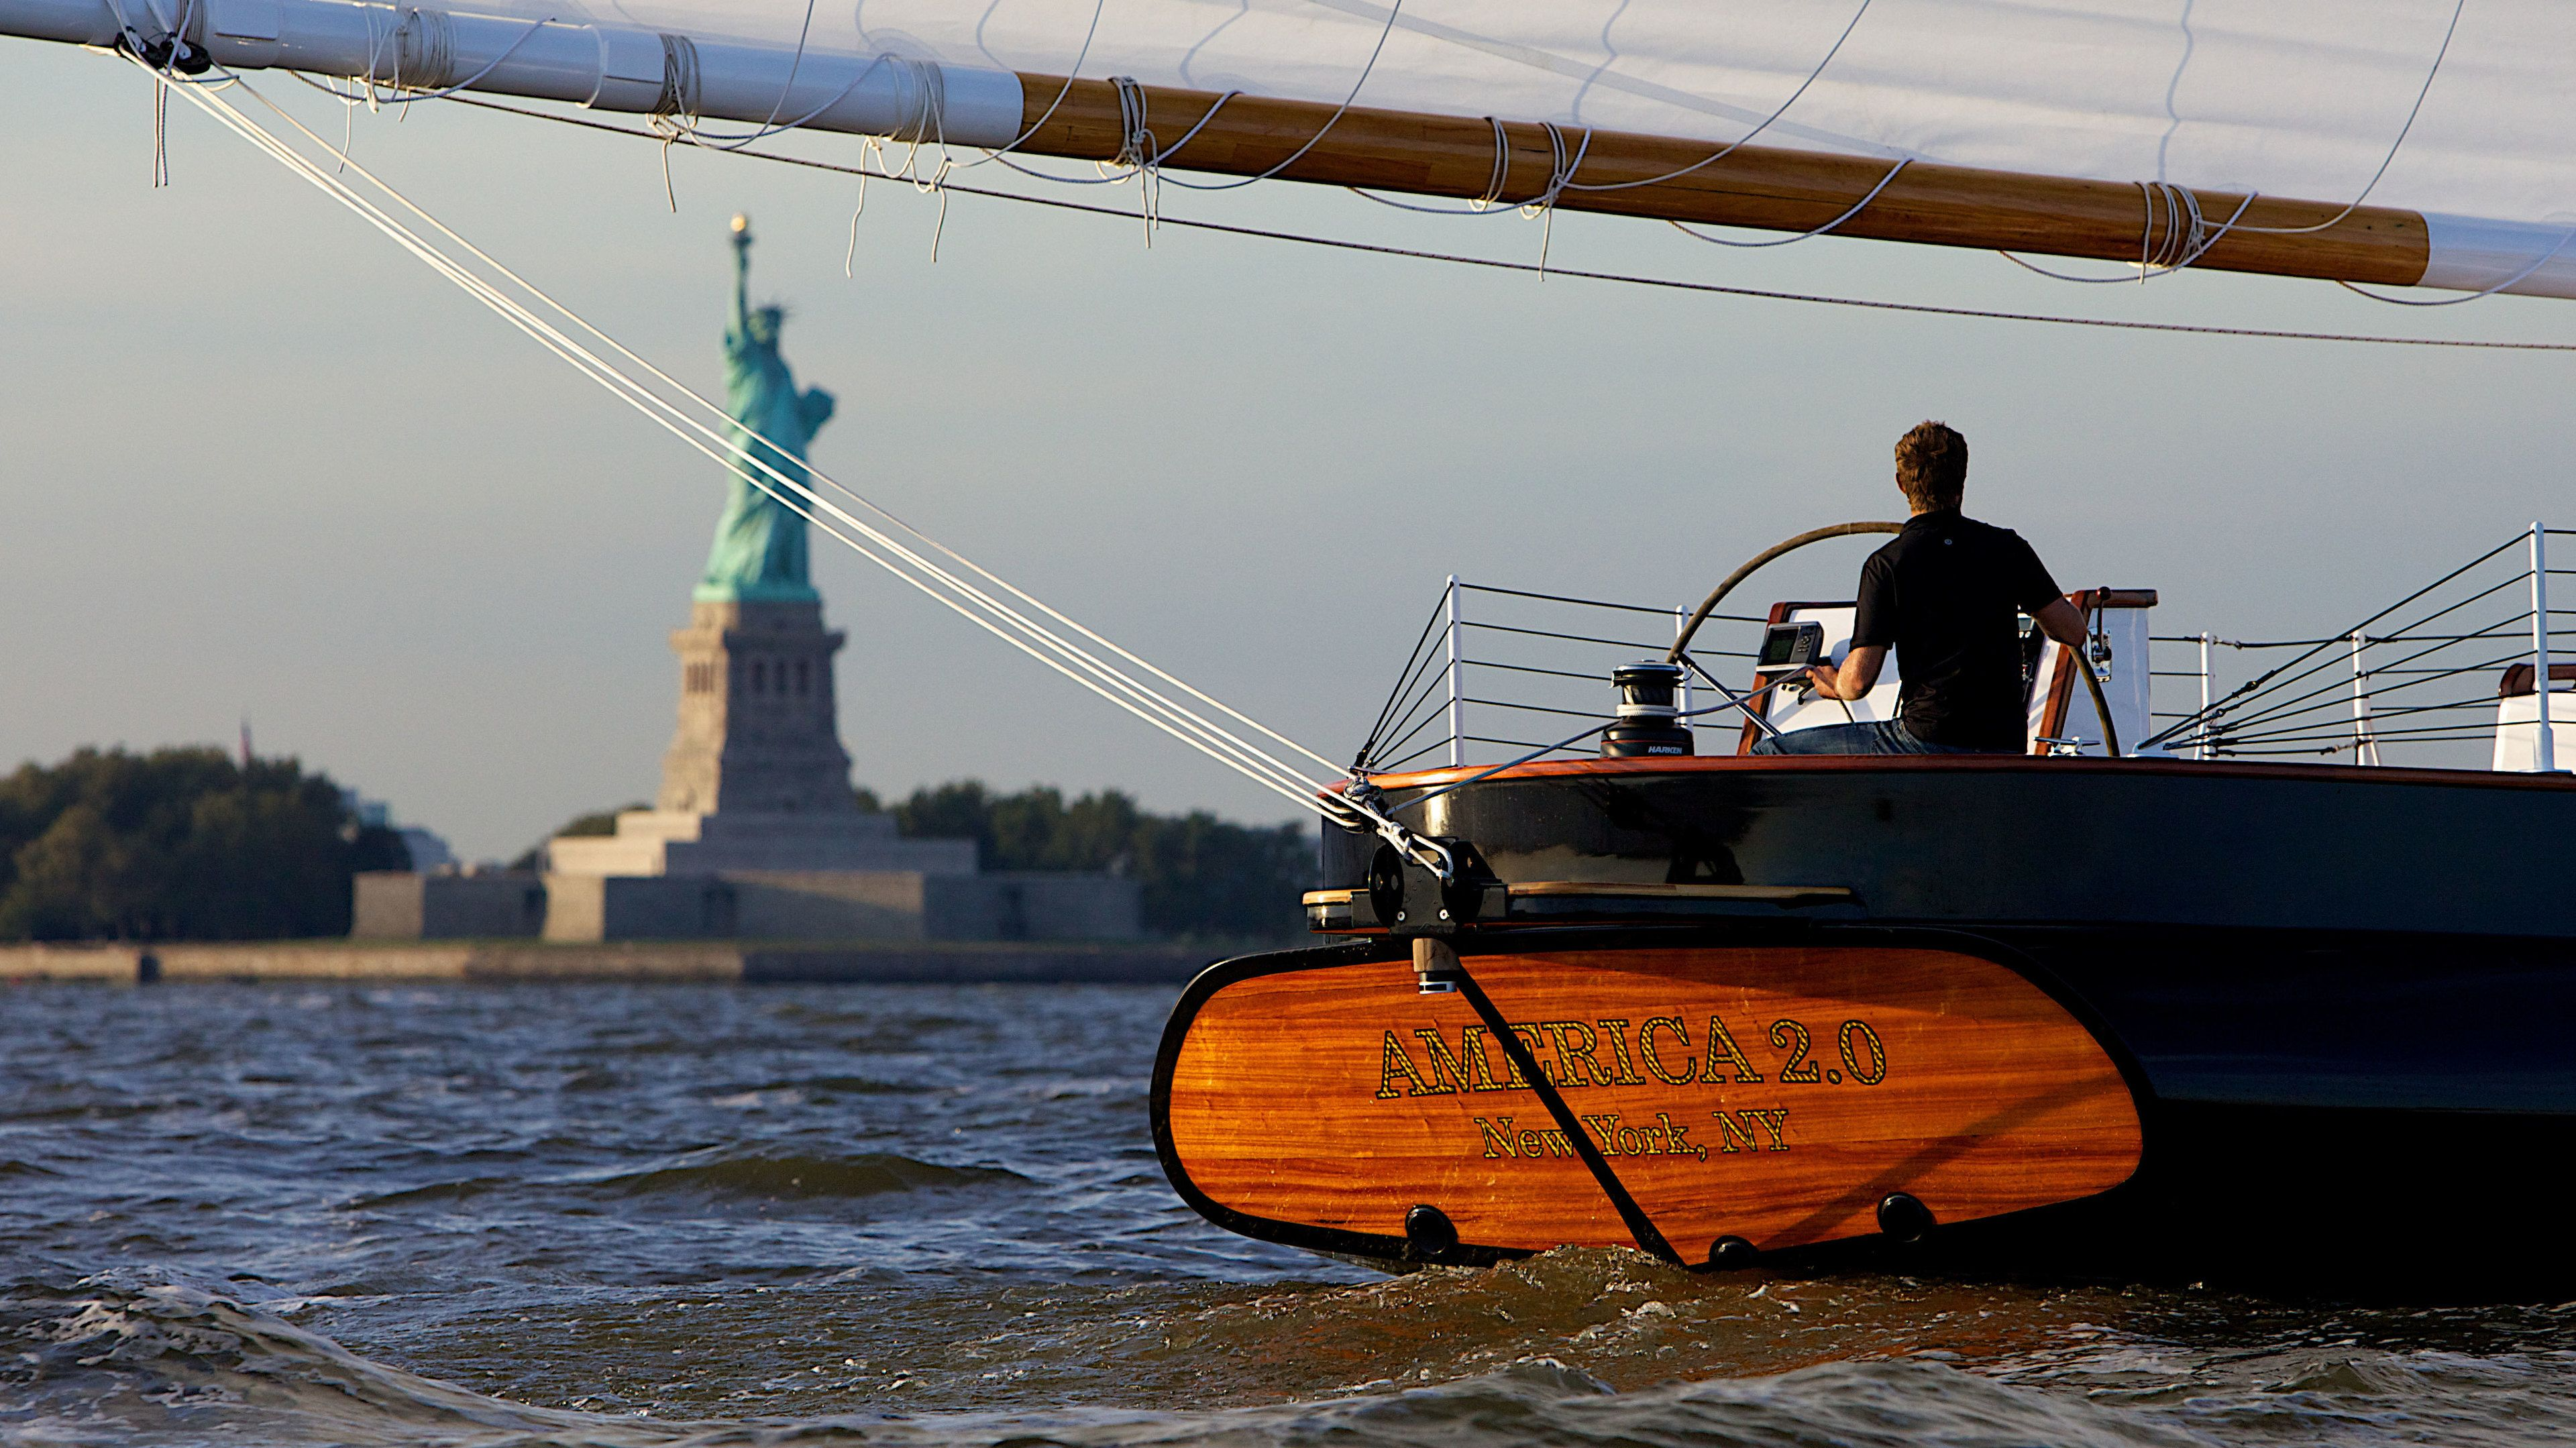 New York City Sunset Sail On board the America 2.0